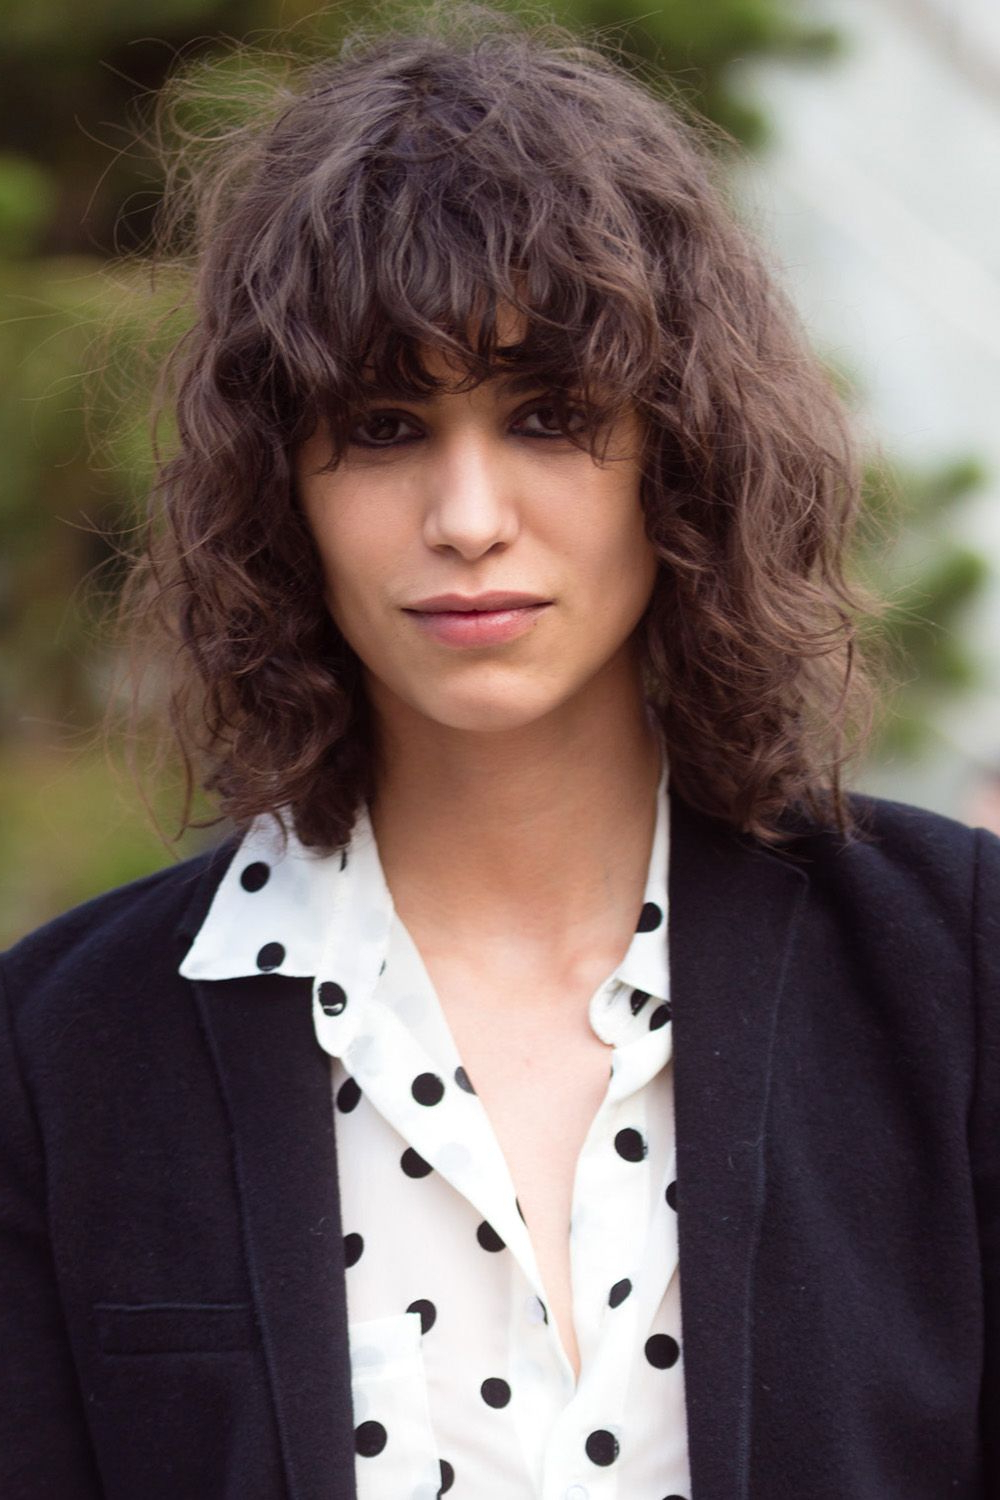 32 Curly Hairstyles And Haircuts We Love – Best Hairstyle Ideas For In Short Black Hairstyles With Tousled Curls (View 16 of 25)